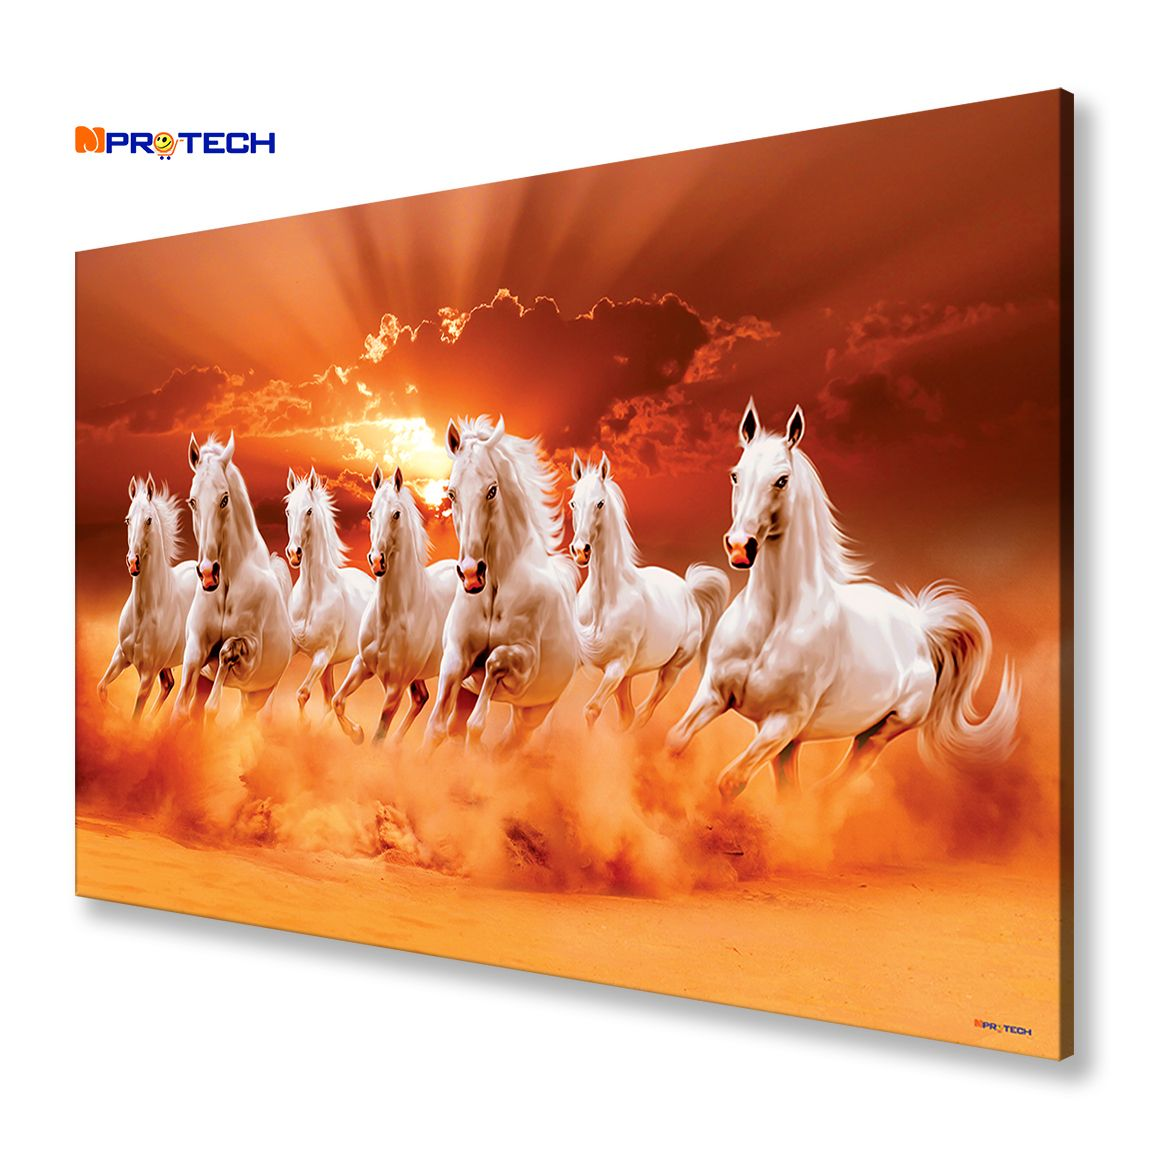 Mpro Tech Eco Canvas Seven Running Horses Painting For Home And Office Vastu 90 X 60 Cm In 2020 Horse Painting Horse Oil Painting Seven Horses Painting